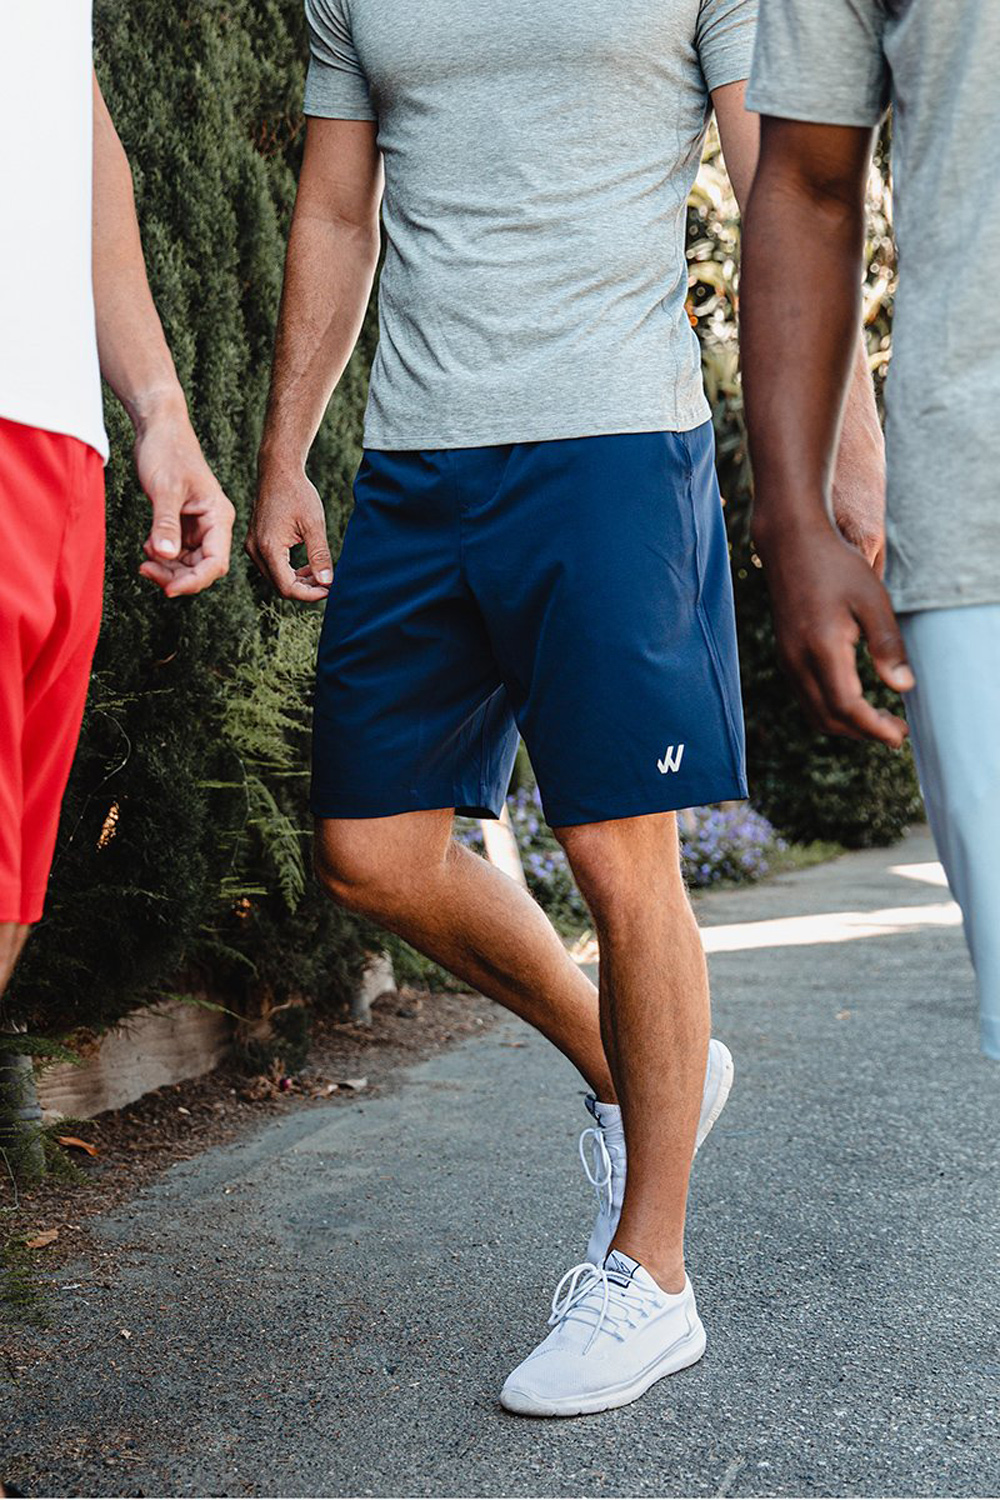 willy california workout shorts athleisure